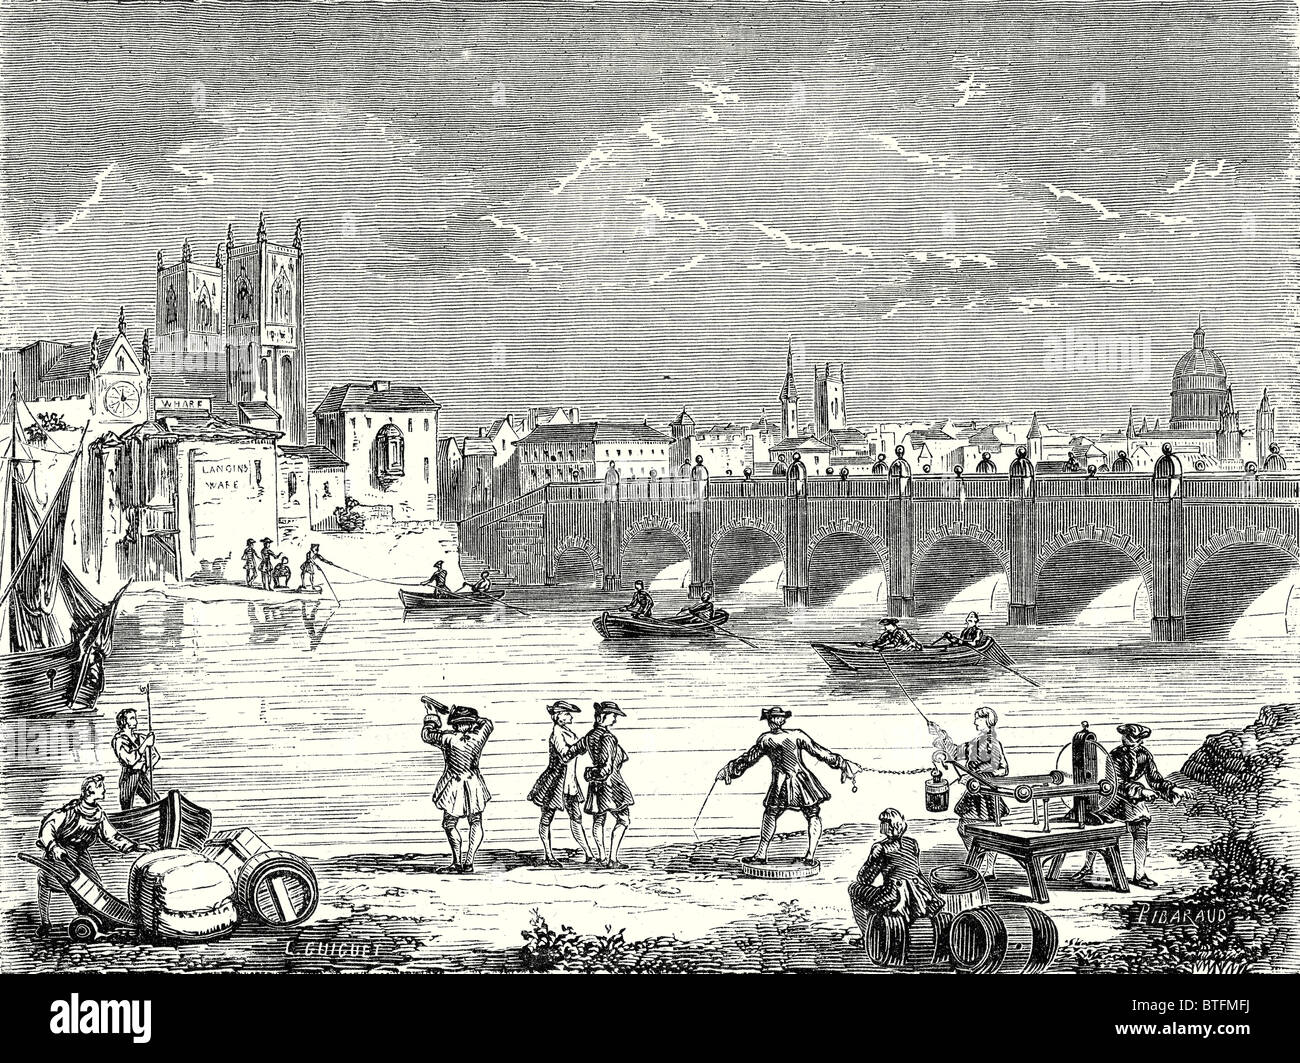 Experiment conducted in 1747 on the Thames by Martin Folcker, Cavendish and Bevis near London Bridge to measure - Stock Image